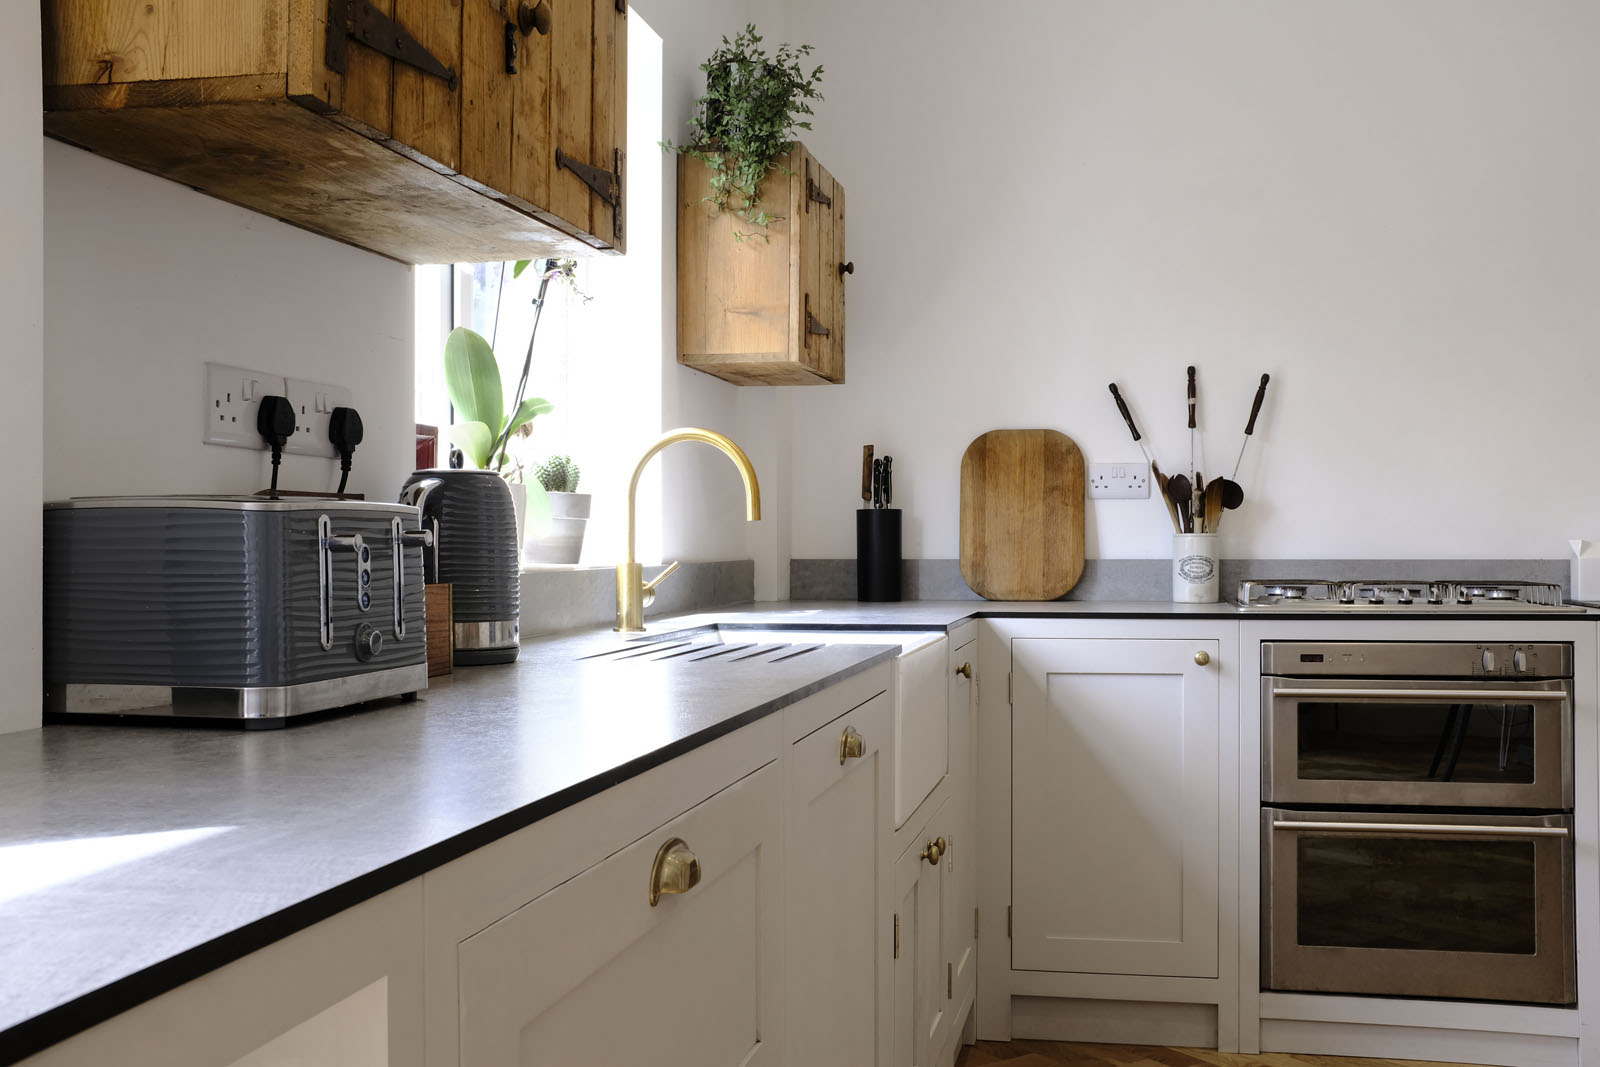 White shaker kitchen with gold details and wooden cupboards